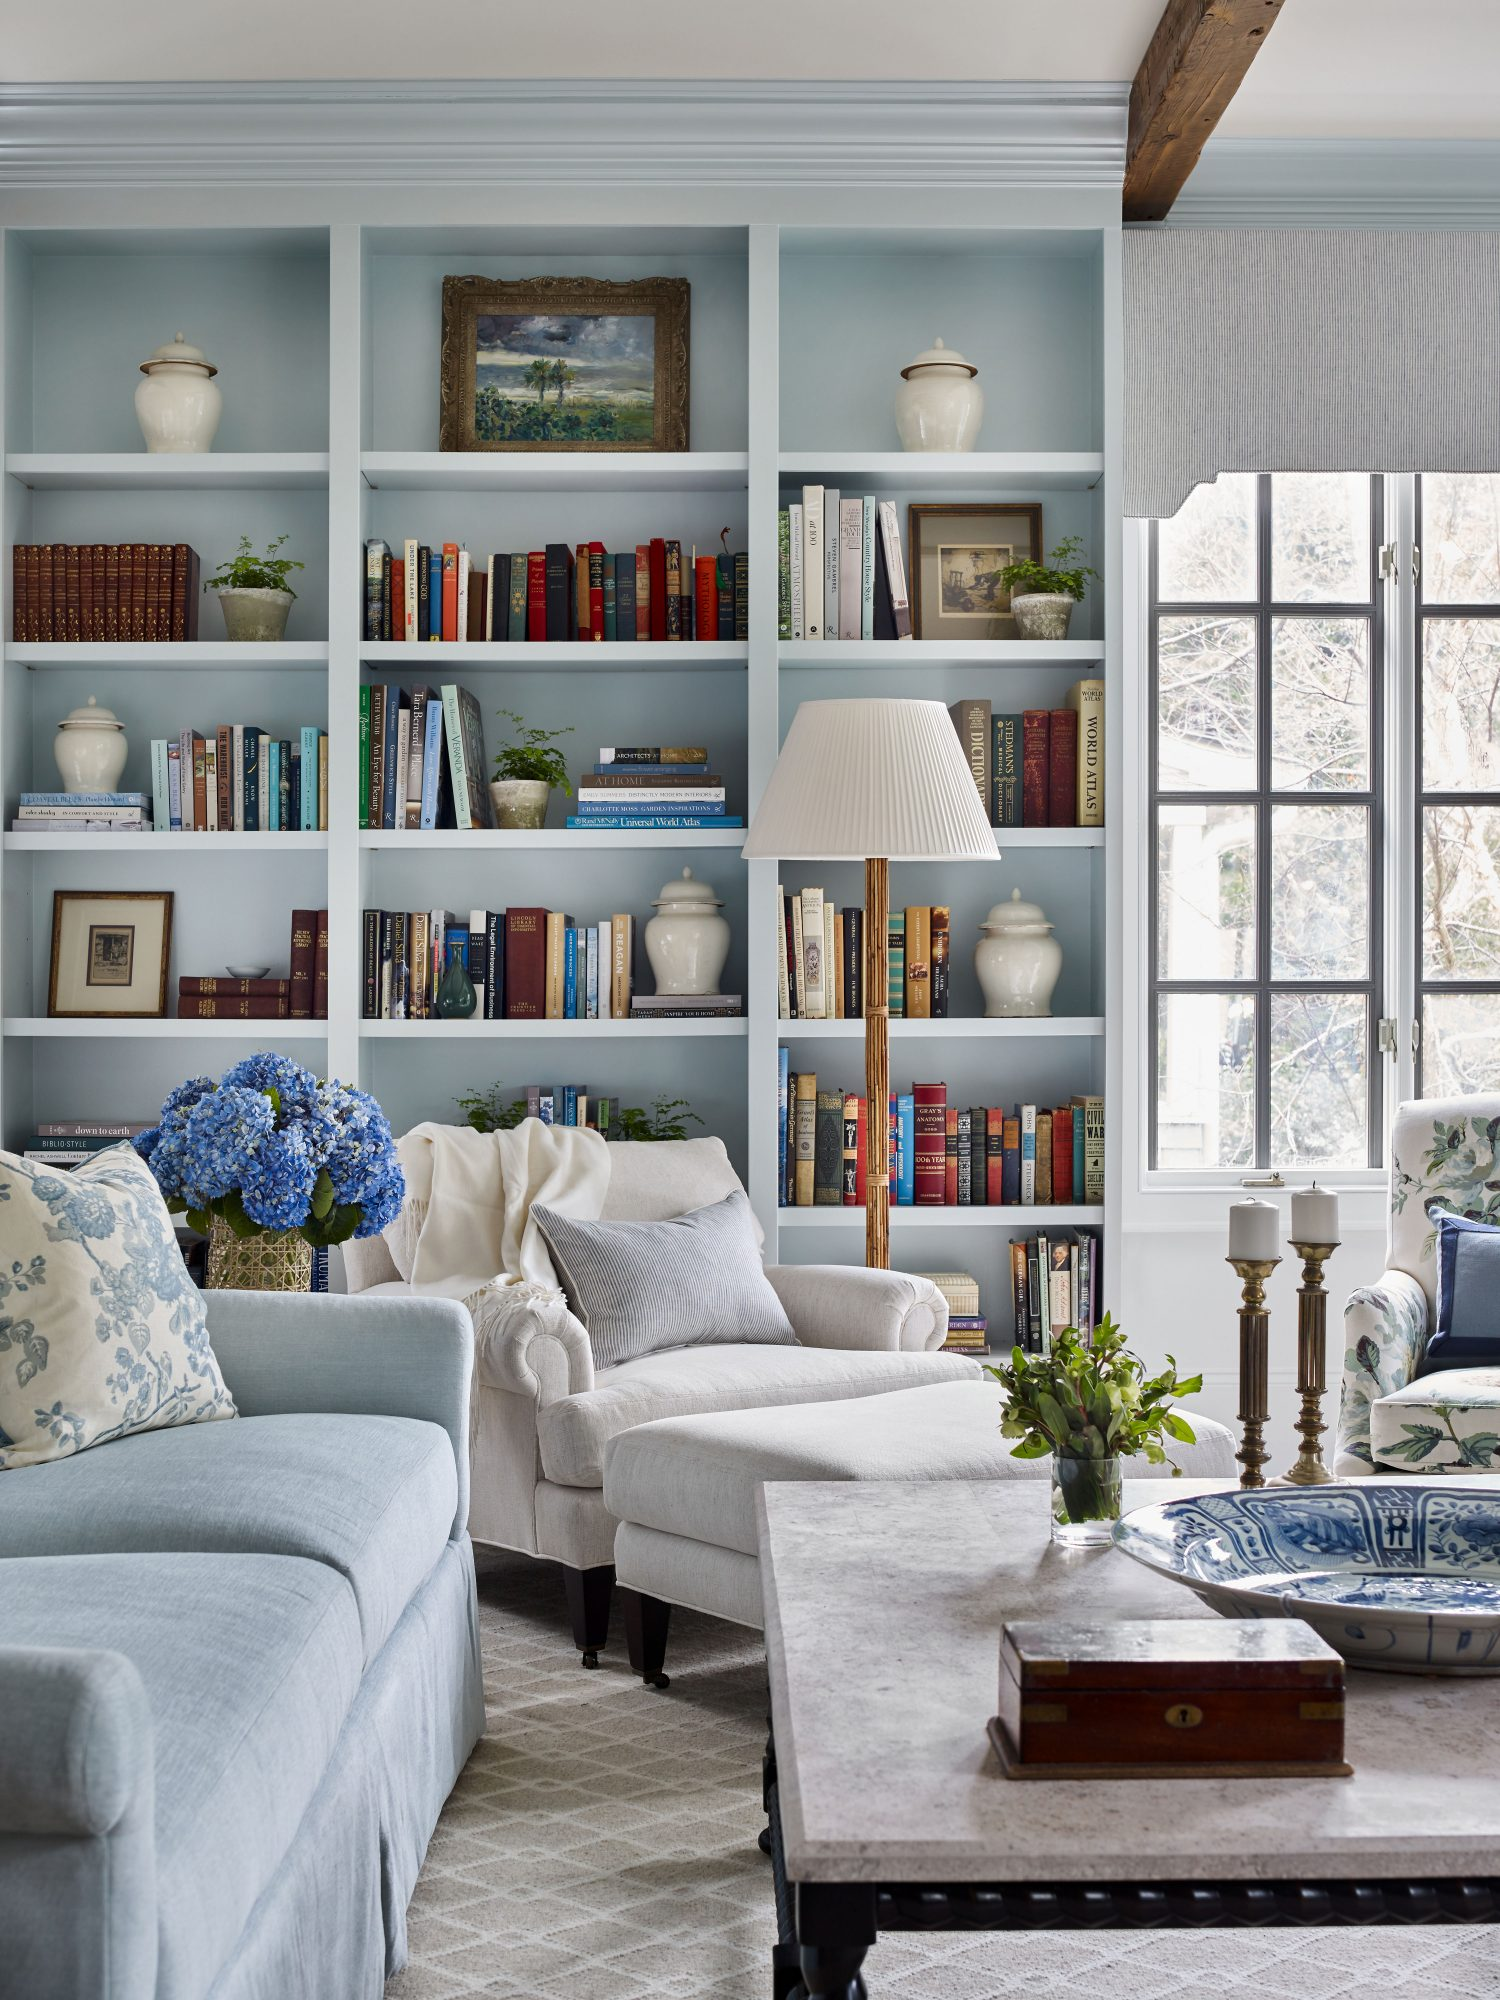 The Best Blue Paint Colors For Porch Ceilings According To Designers Southern Living